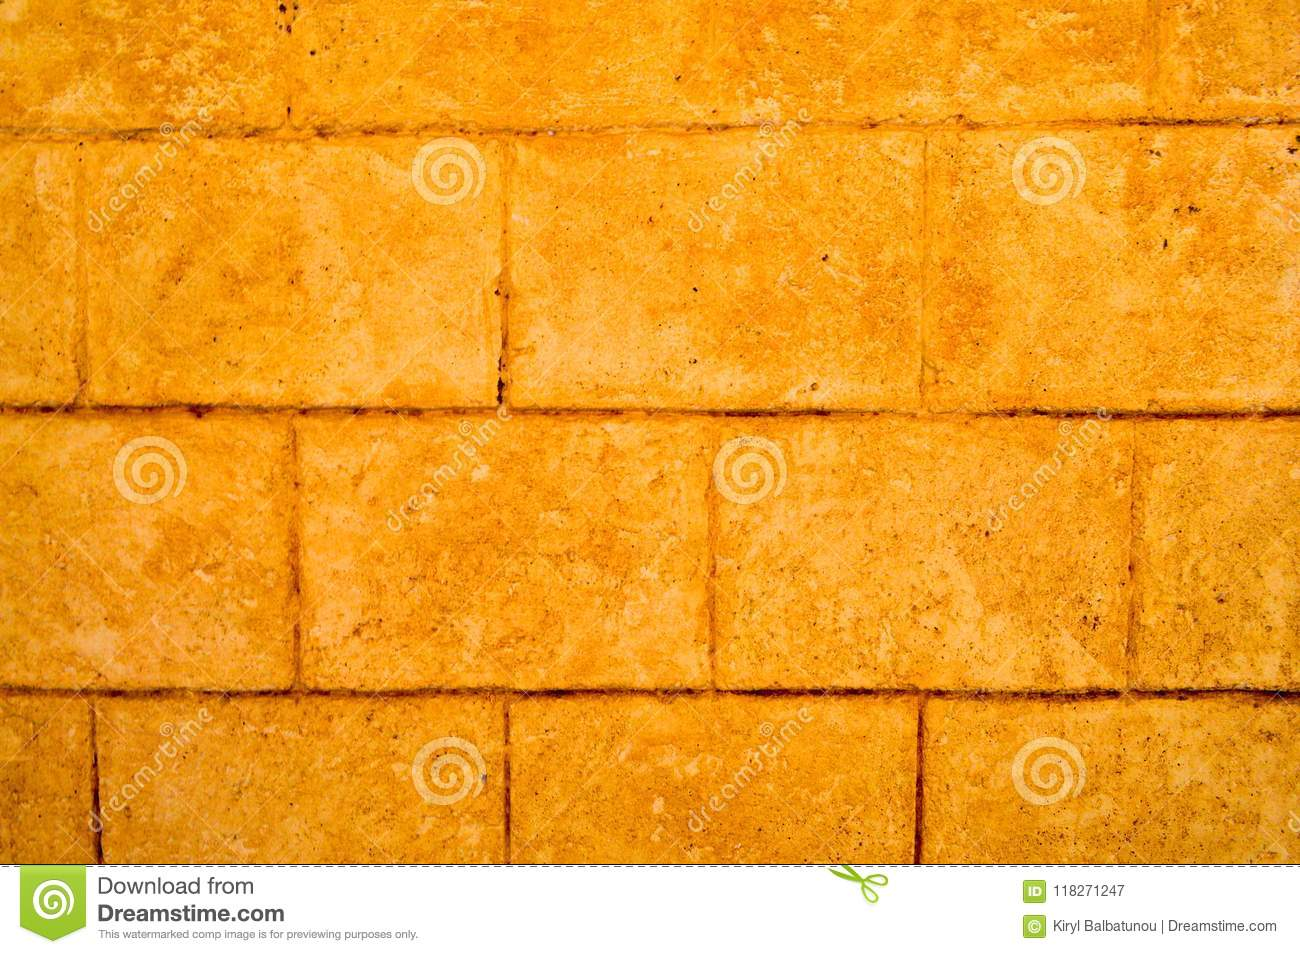 Yellow Texture Of The Old Ancient Brick Stone Wall With Tiles